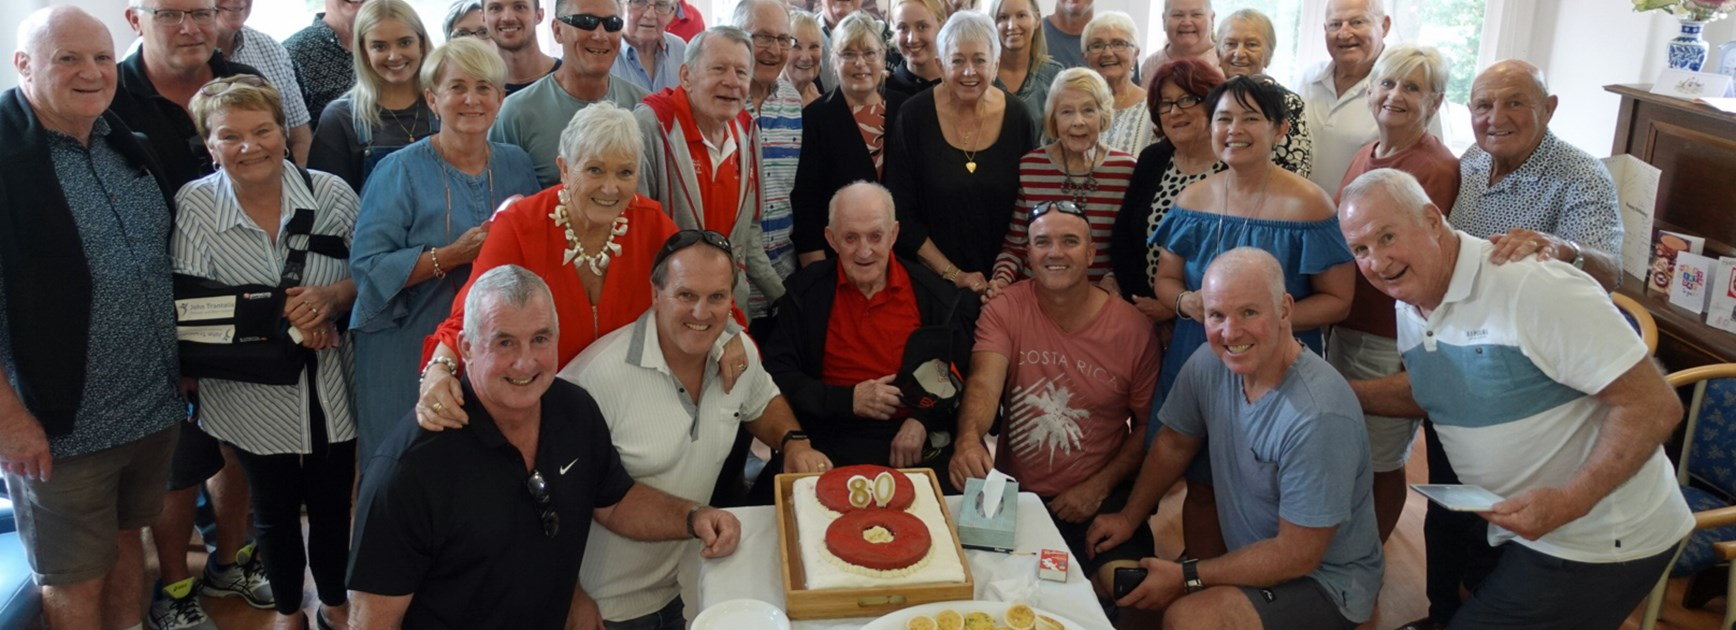 'Chook' Raper's emotional speech for 80th Birthday